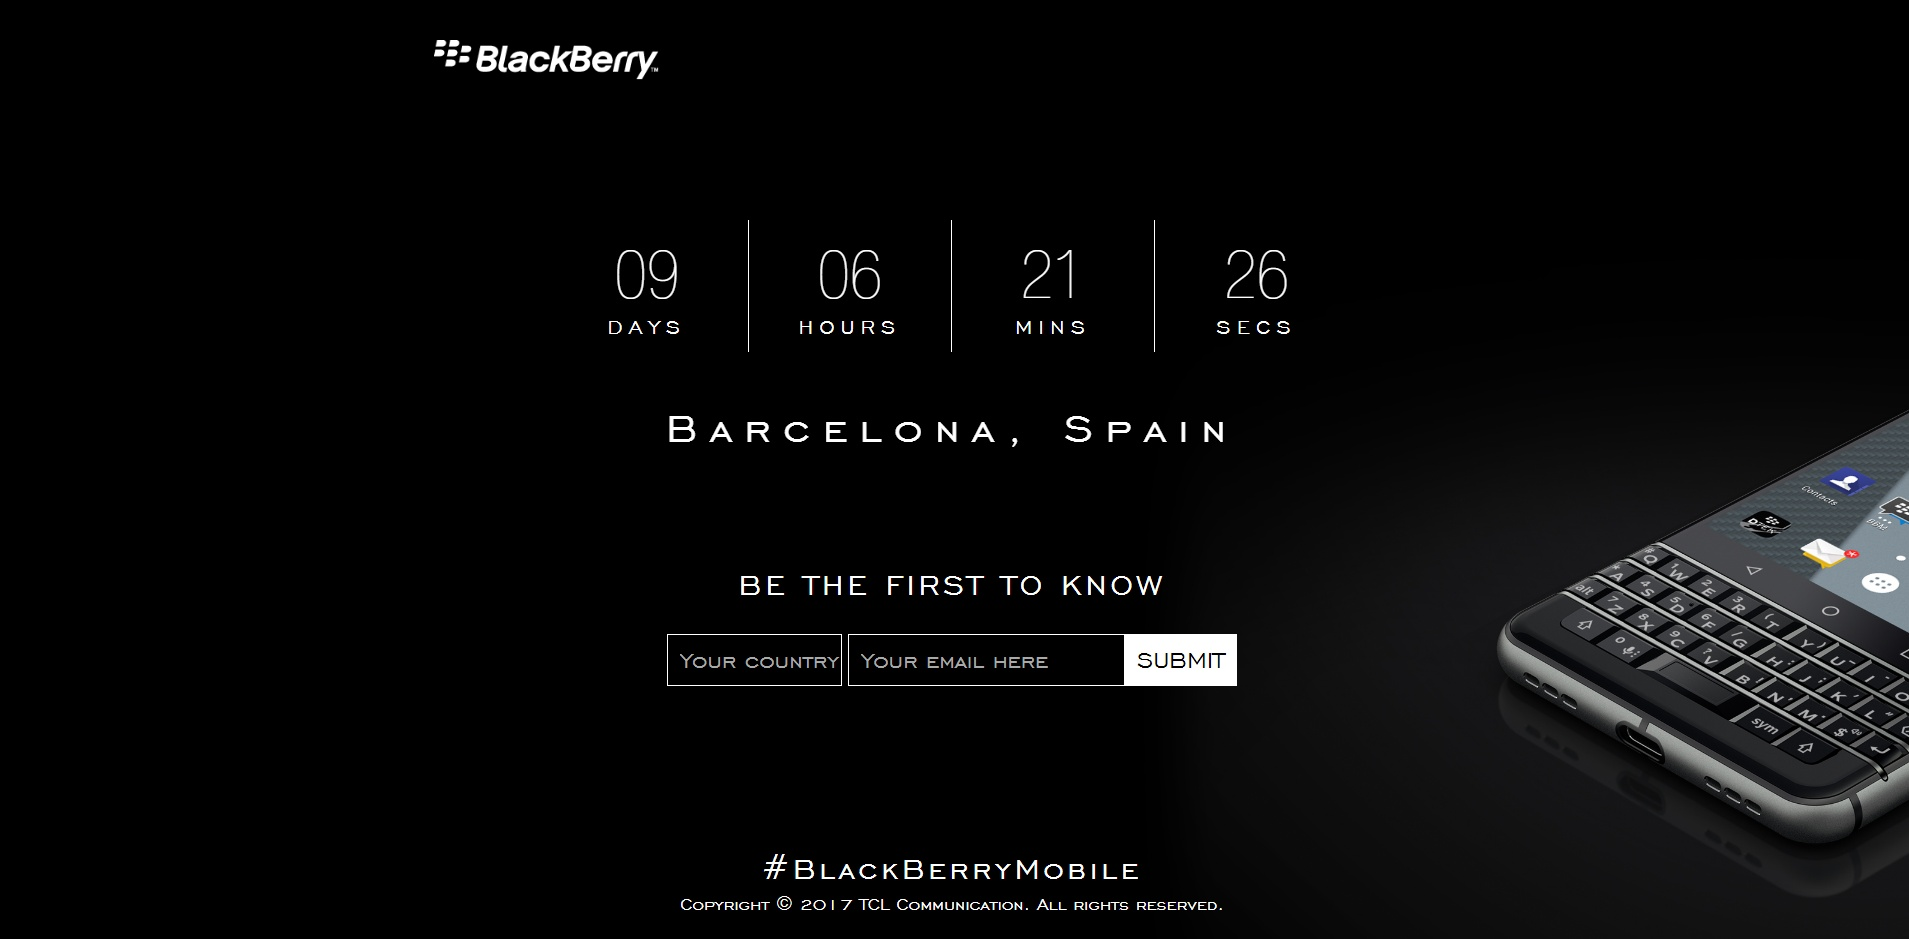 blackberrymobile_web.jpg